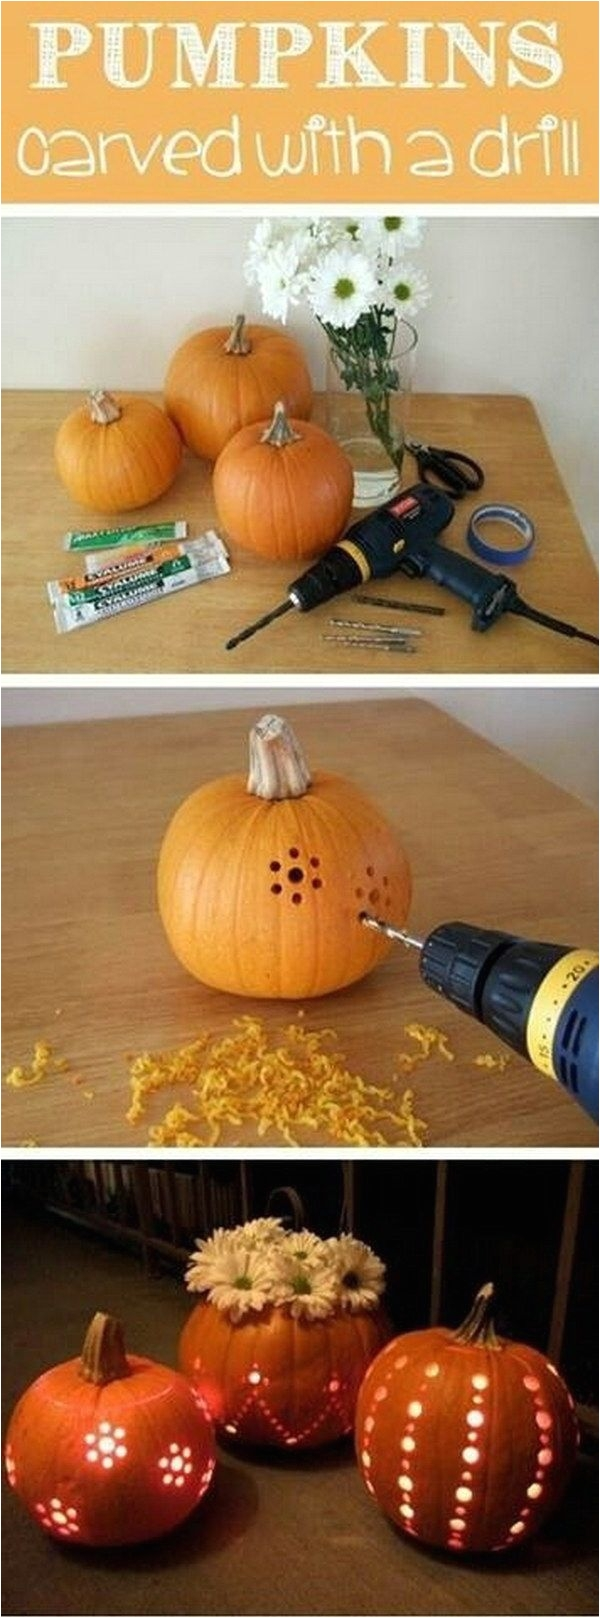 Decorative Pumpkins for Sale 1115 Best Holiday Halloween Decor and Crafts Images On Pinterest